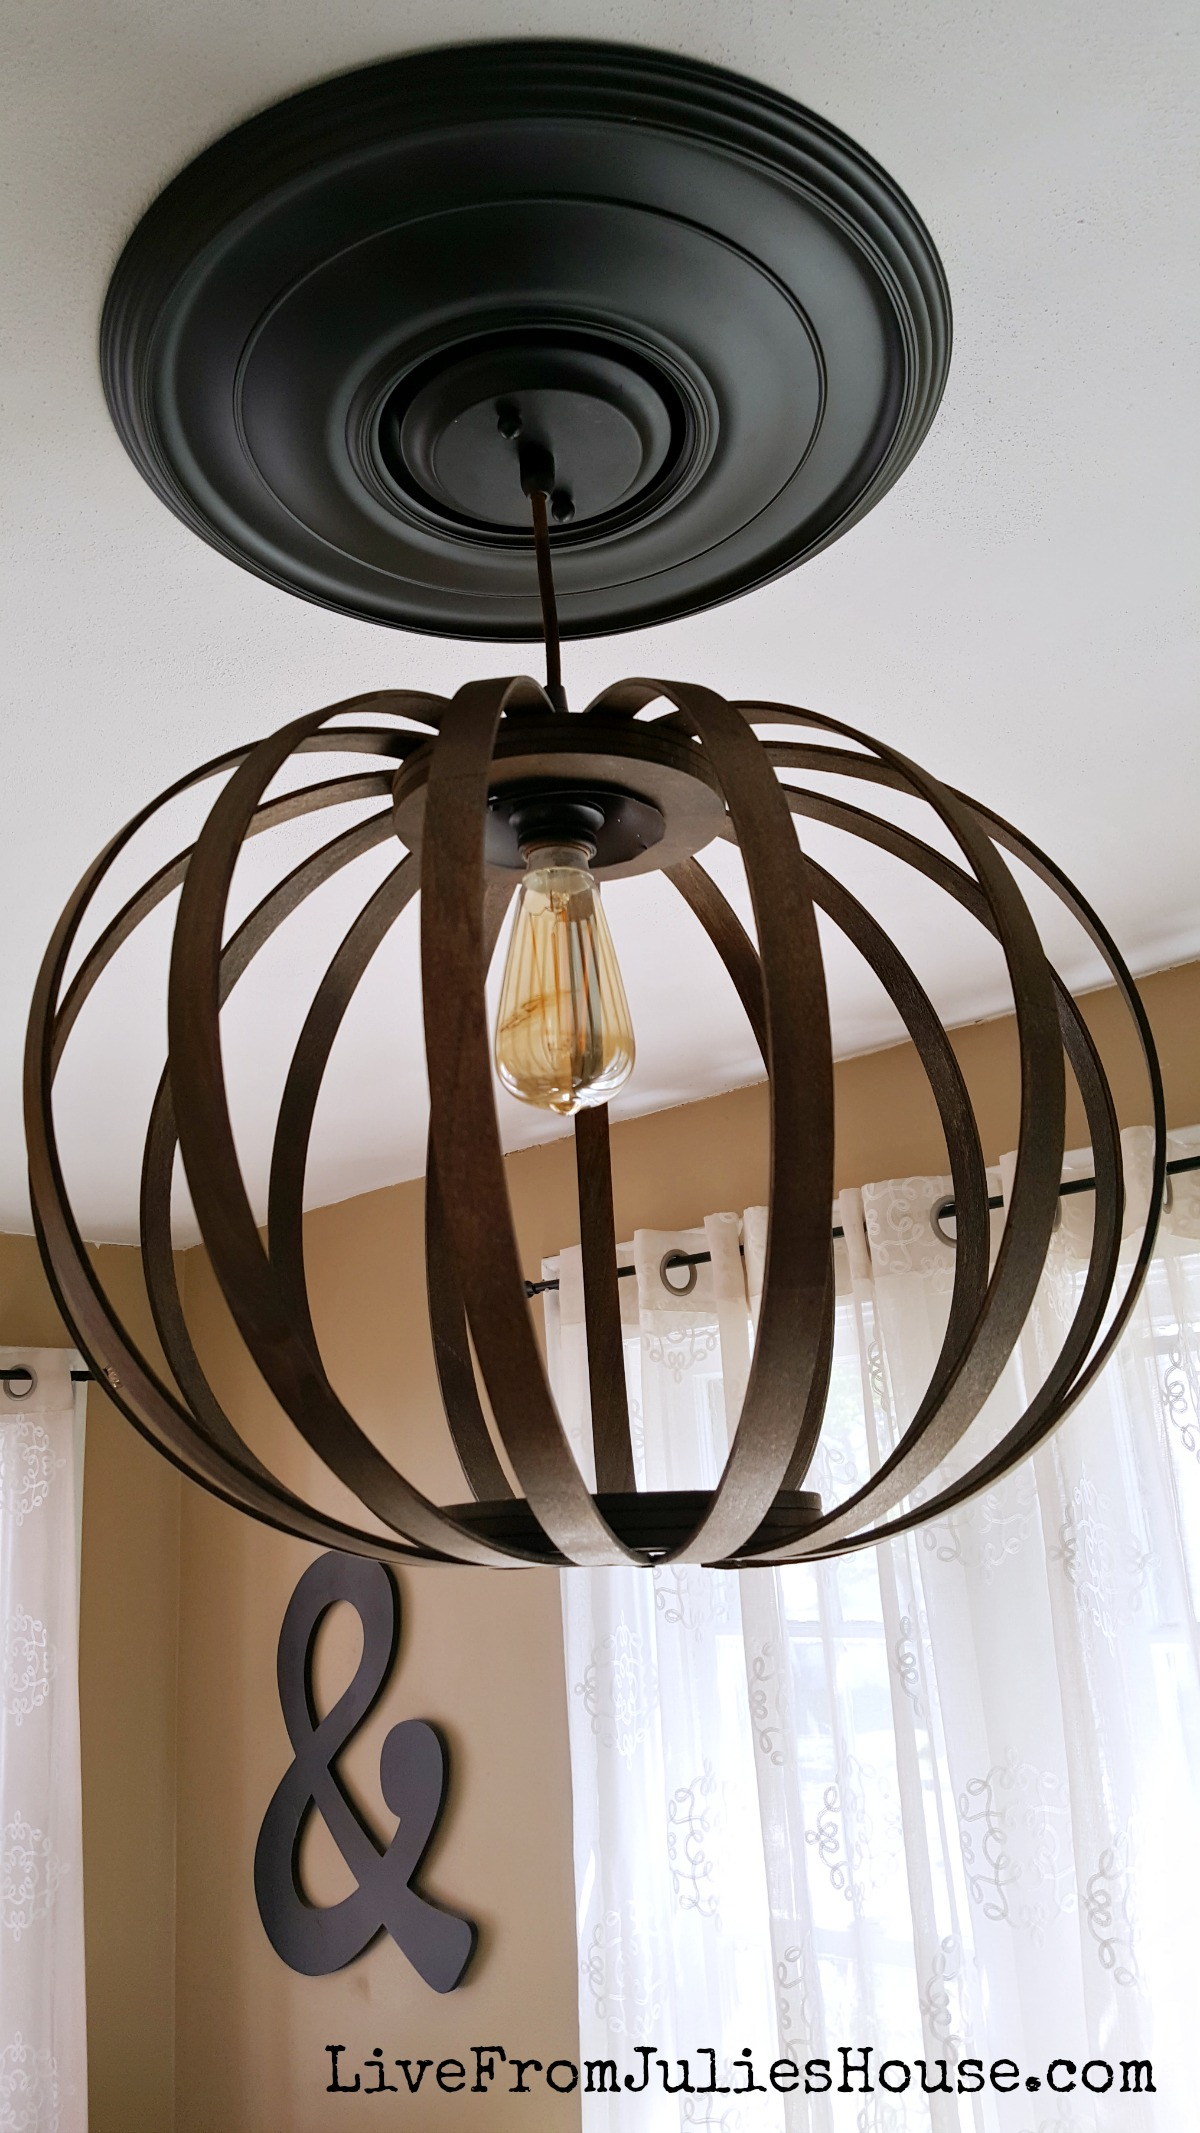 West Elm DIY Bentwood Pendant - I tackled the famous West Elm knock off project and & West Elm DIY Bentwood Pendant Debacle - Live from Julieu0027s House azcodes.com